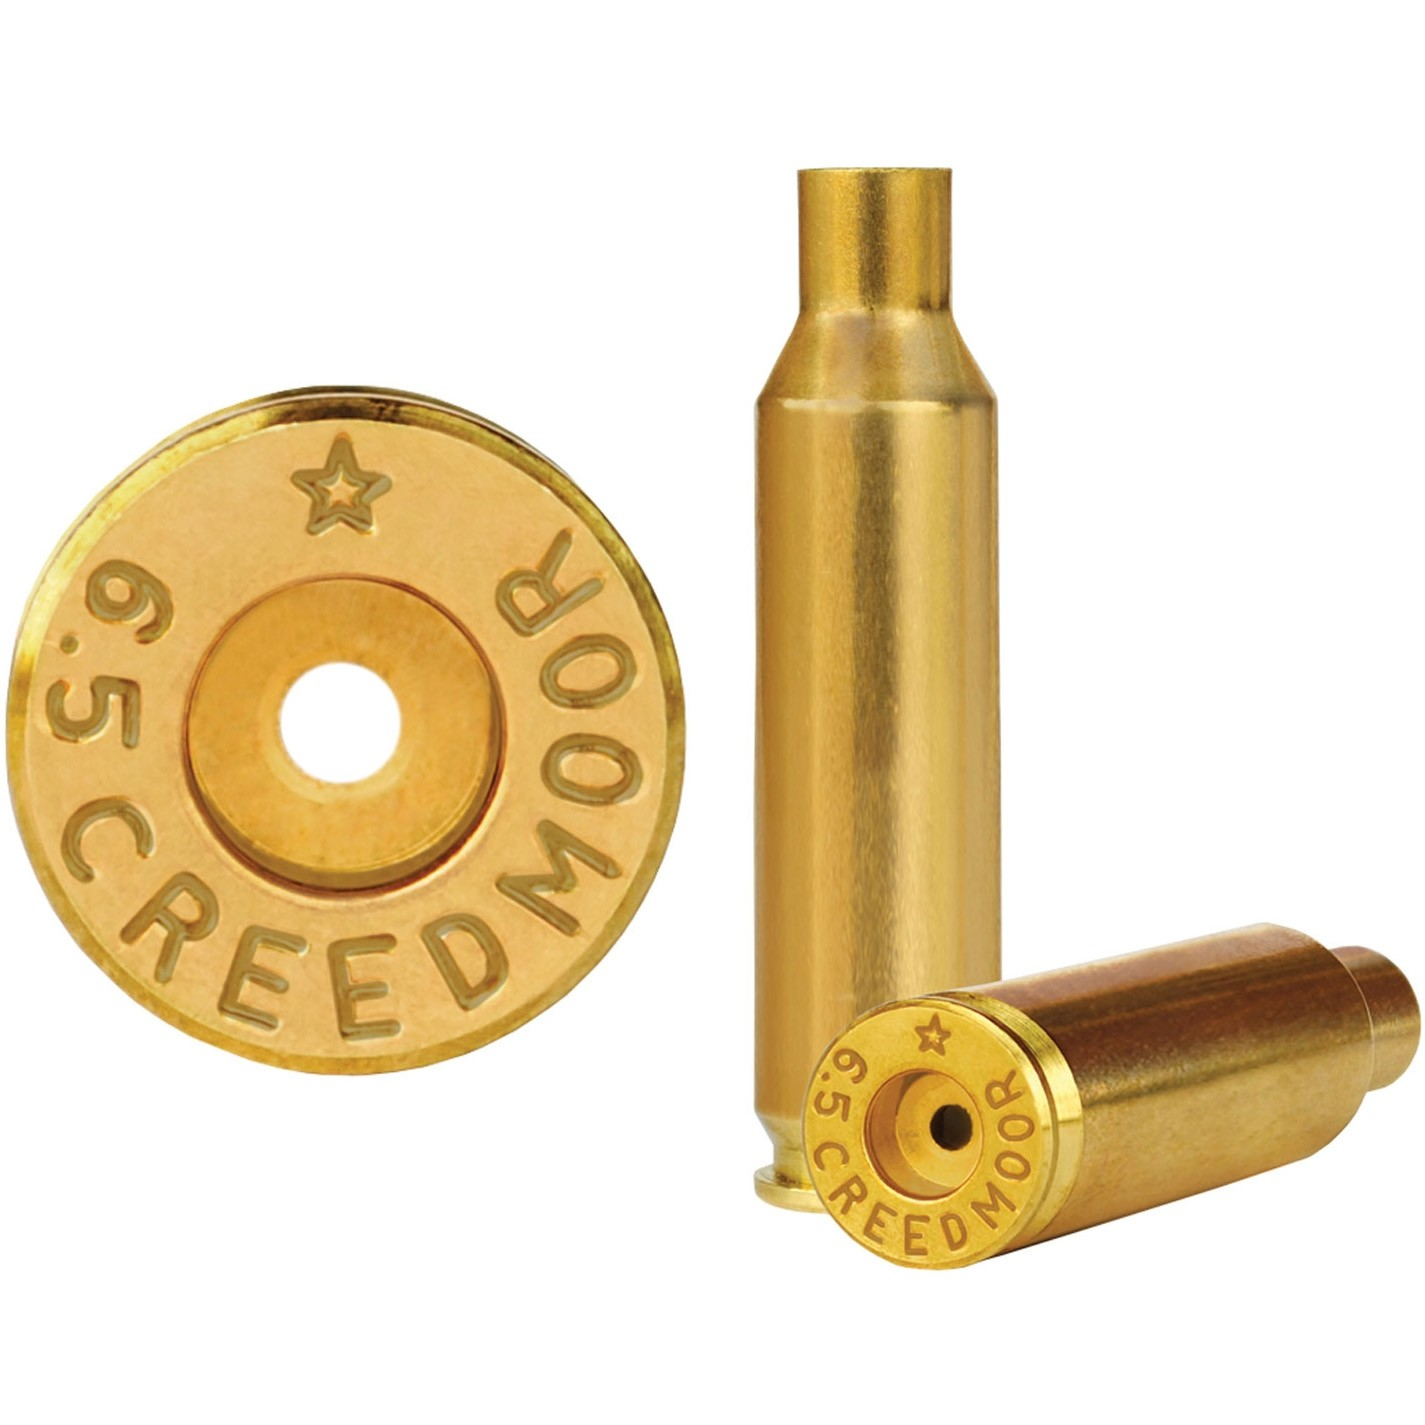 Starline 6.5 Creedmoor Unprimed 100rd Brass